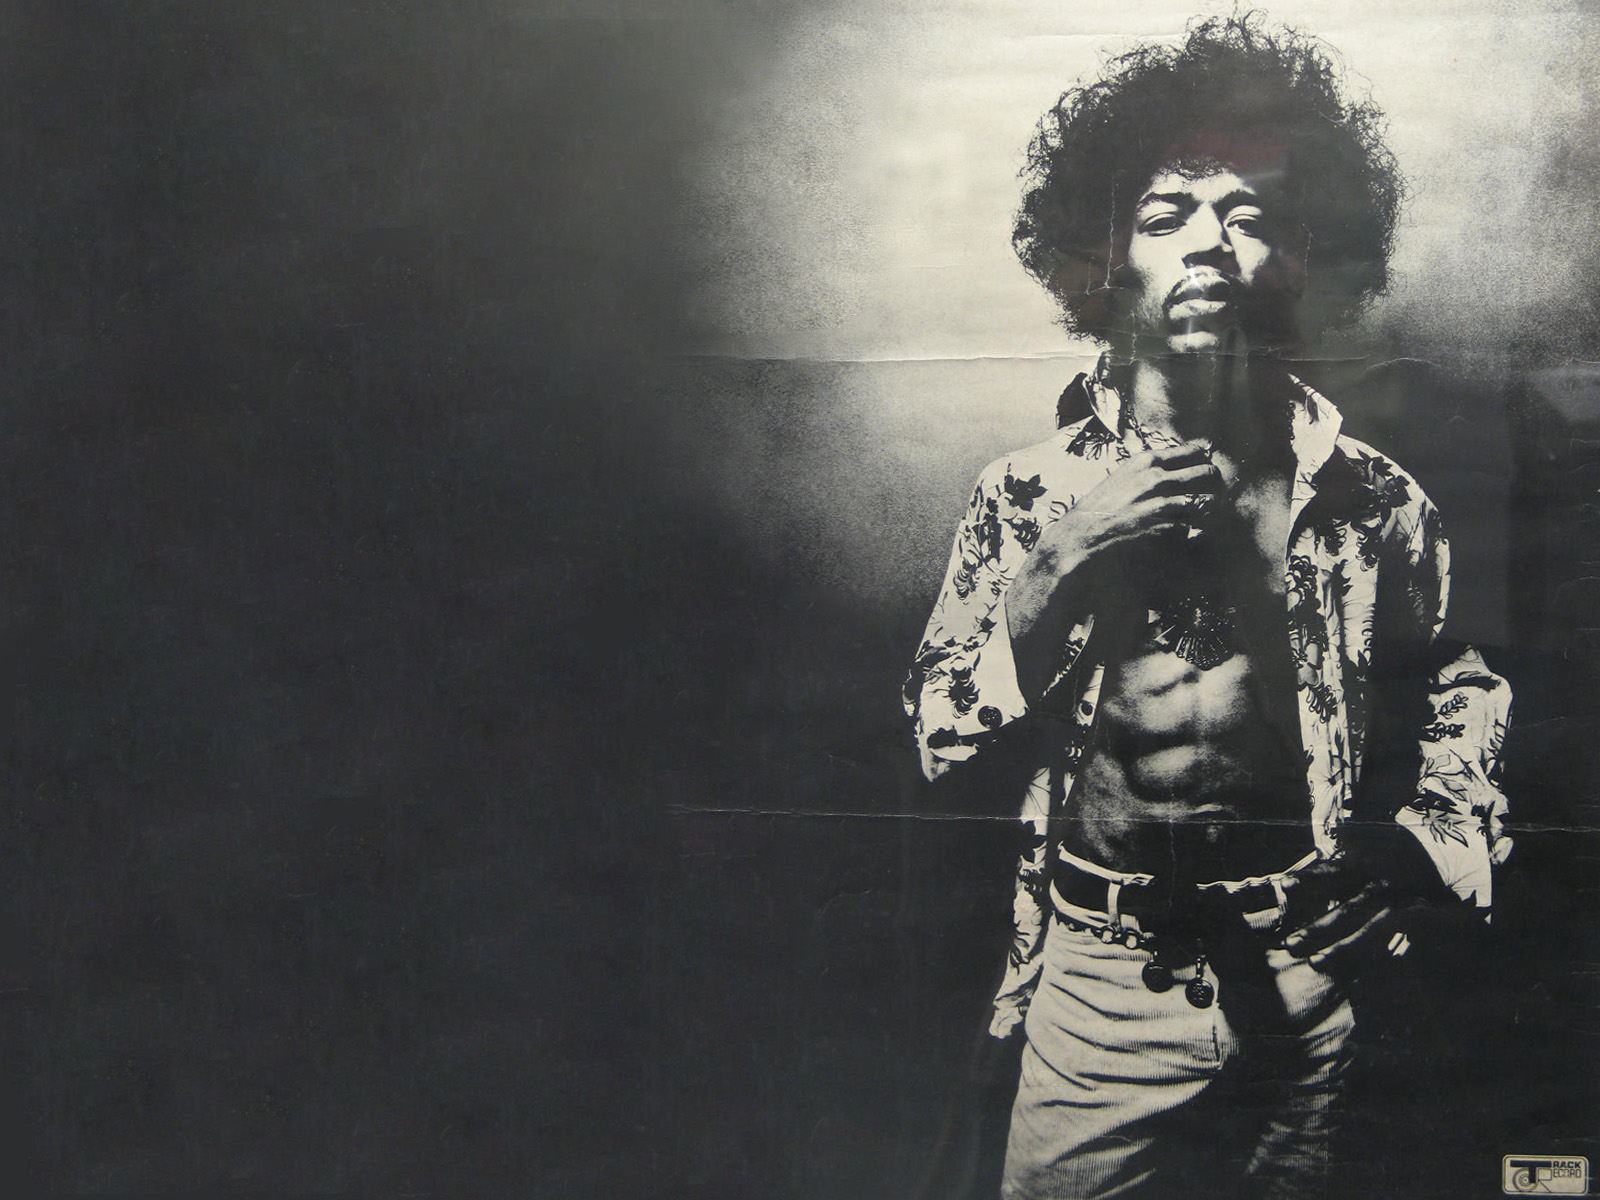 Jimi Hendrix Net Worth